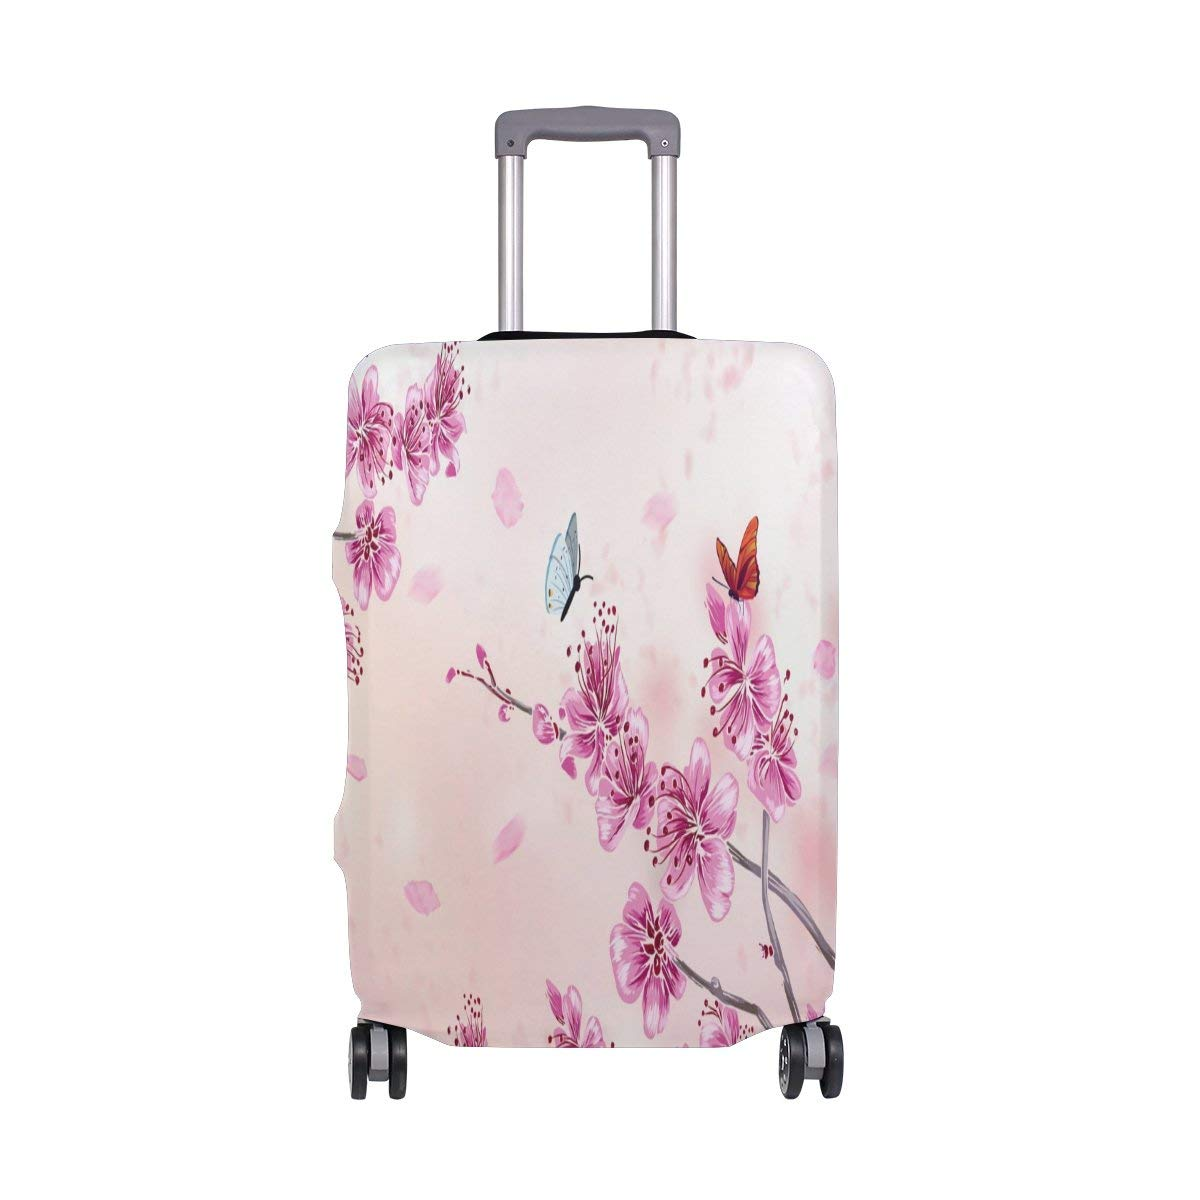 ALAZA Different Daisy Flower Polyester Luggage Travel Suitcase Cover Case Protector